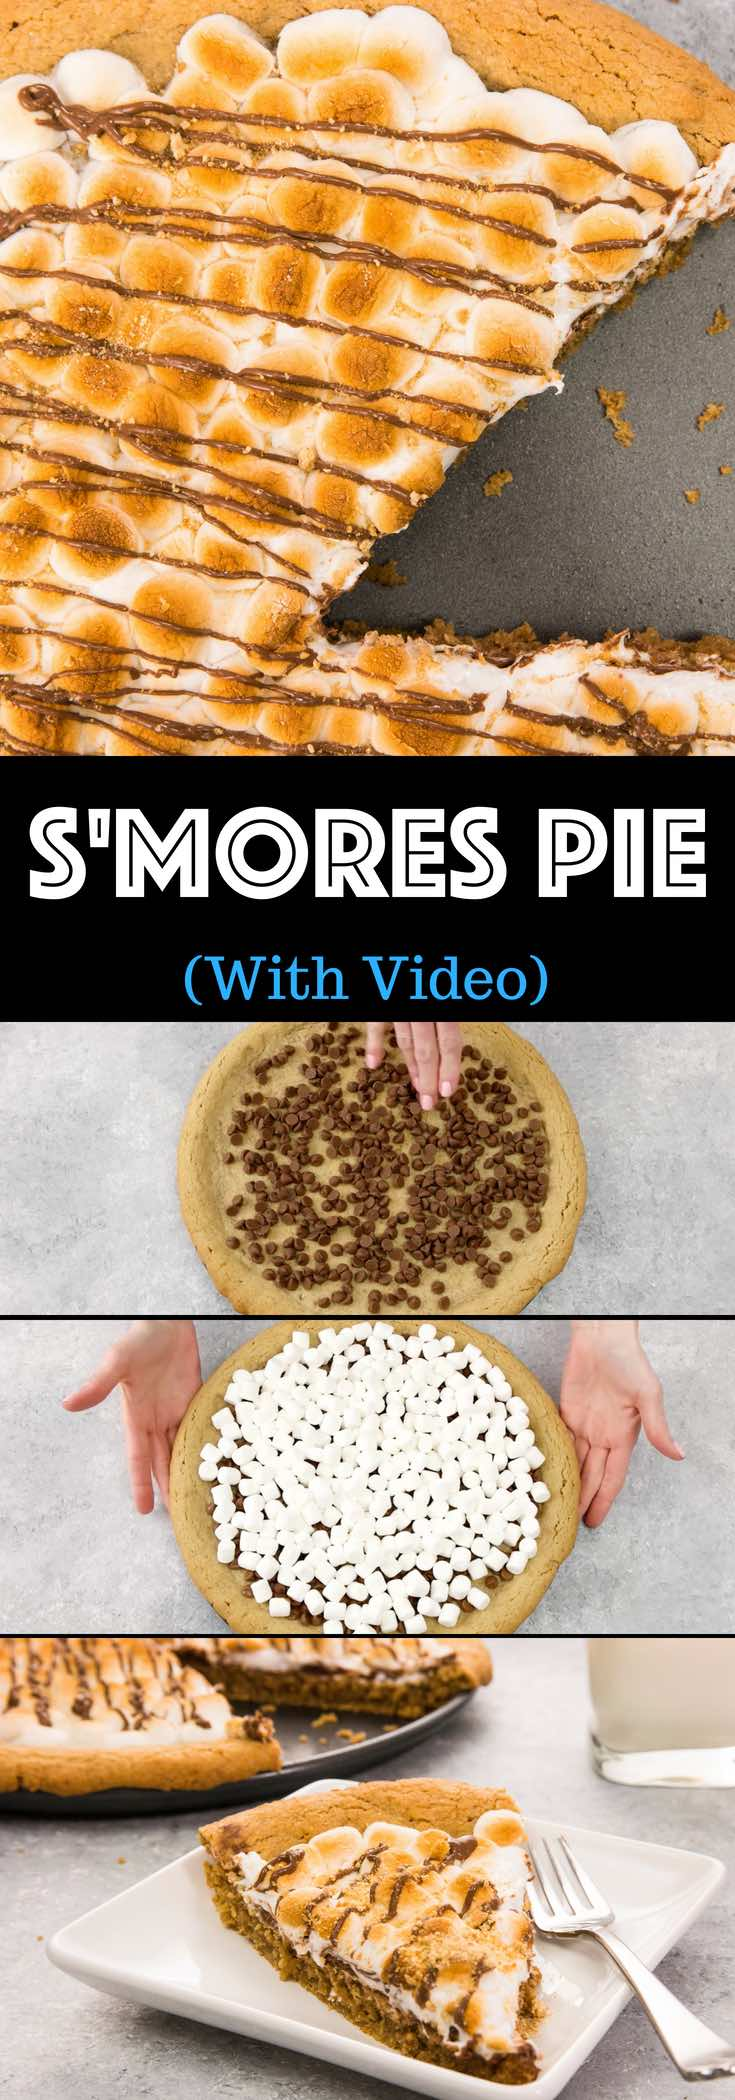 S'mores Pie / S'more Pizza is gooey, chocolatey, rich and crunchy making a perfect crow-pleaser. It's such an easy recipe that takes less than 30 minutes. Who needs a campfire? The combination of graham cracker crust, toasted marshmallow and rich chocolate come together, in the form of a delicious pie. So good! Quick and easy recipe. | izzycooking.com #smoresPie #smoresPizza